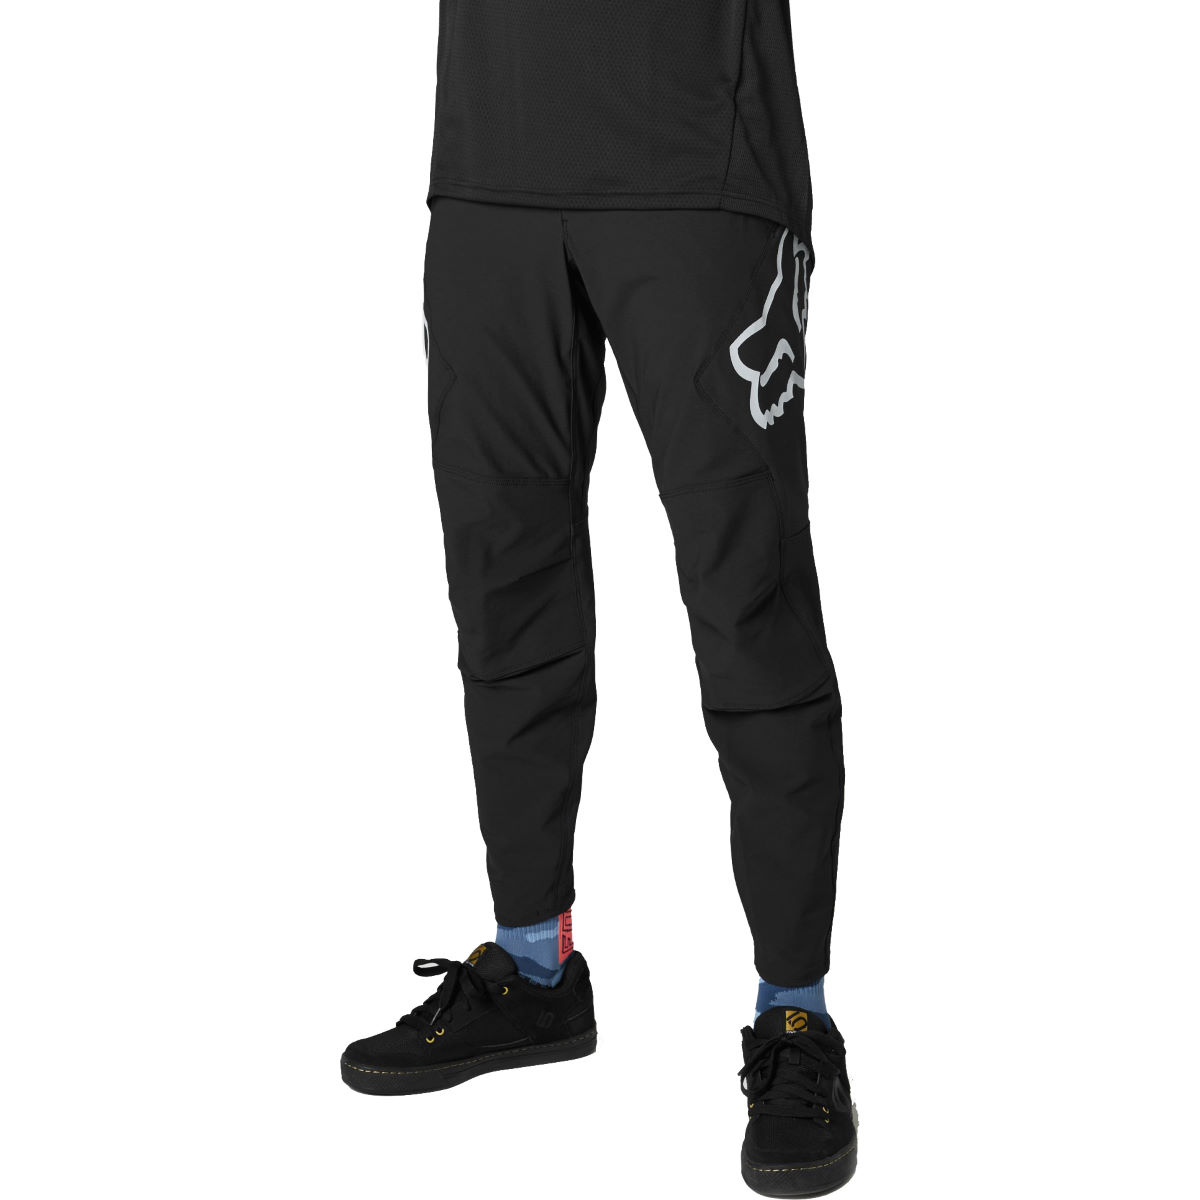 Fox Racing Defend Cycling Trousers Rs - 30 Black  Trousers